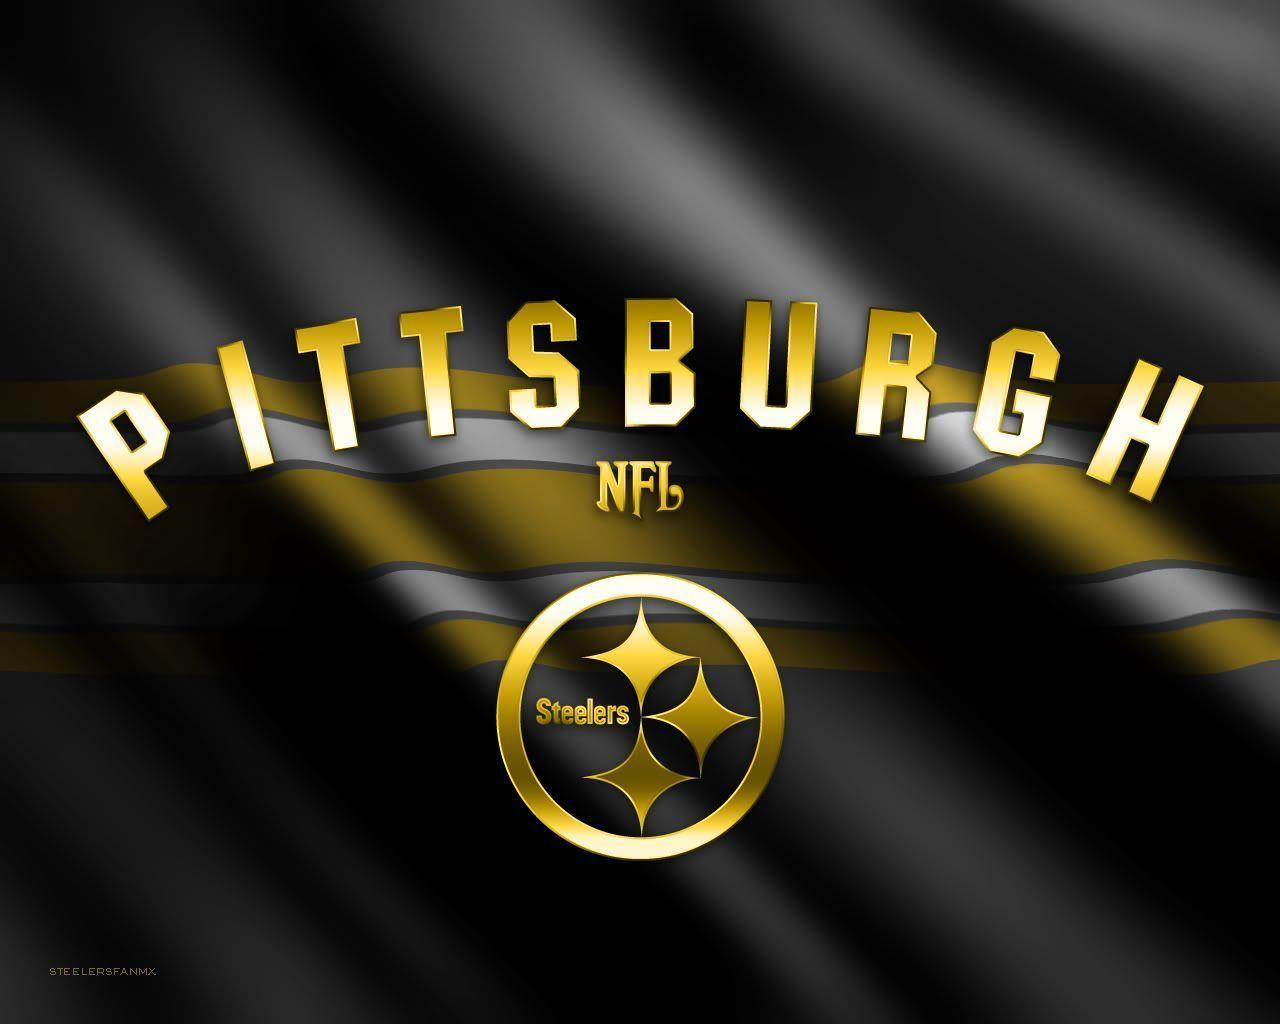 Pittsburgh Steeler NFL Flag 68205 Wallpaper HD Desktop - wallpaperasu